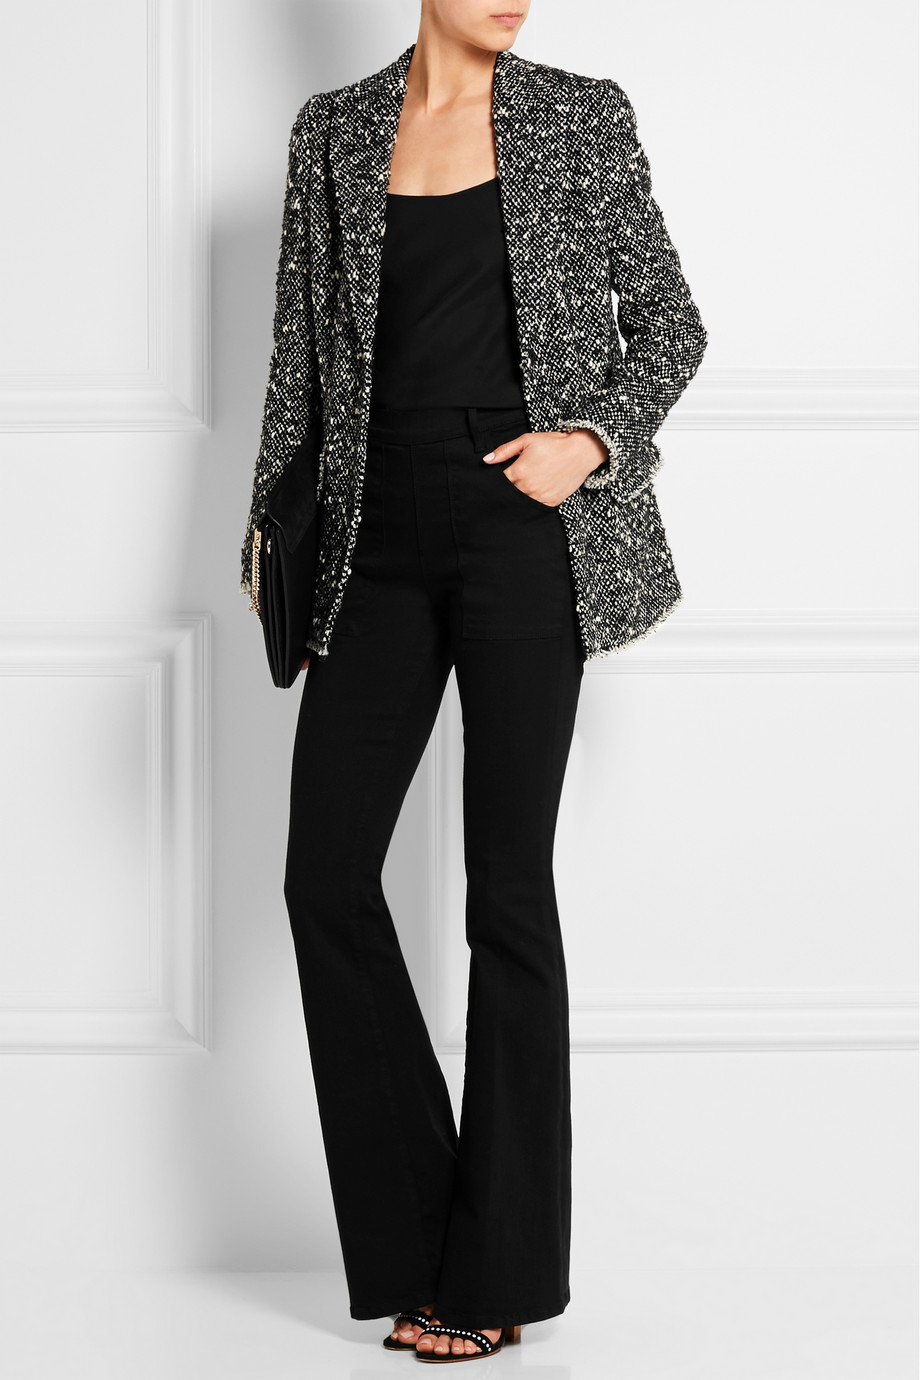 dolce and gabbana blazer with texture